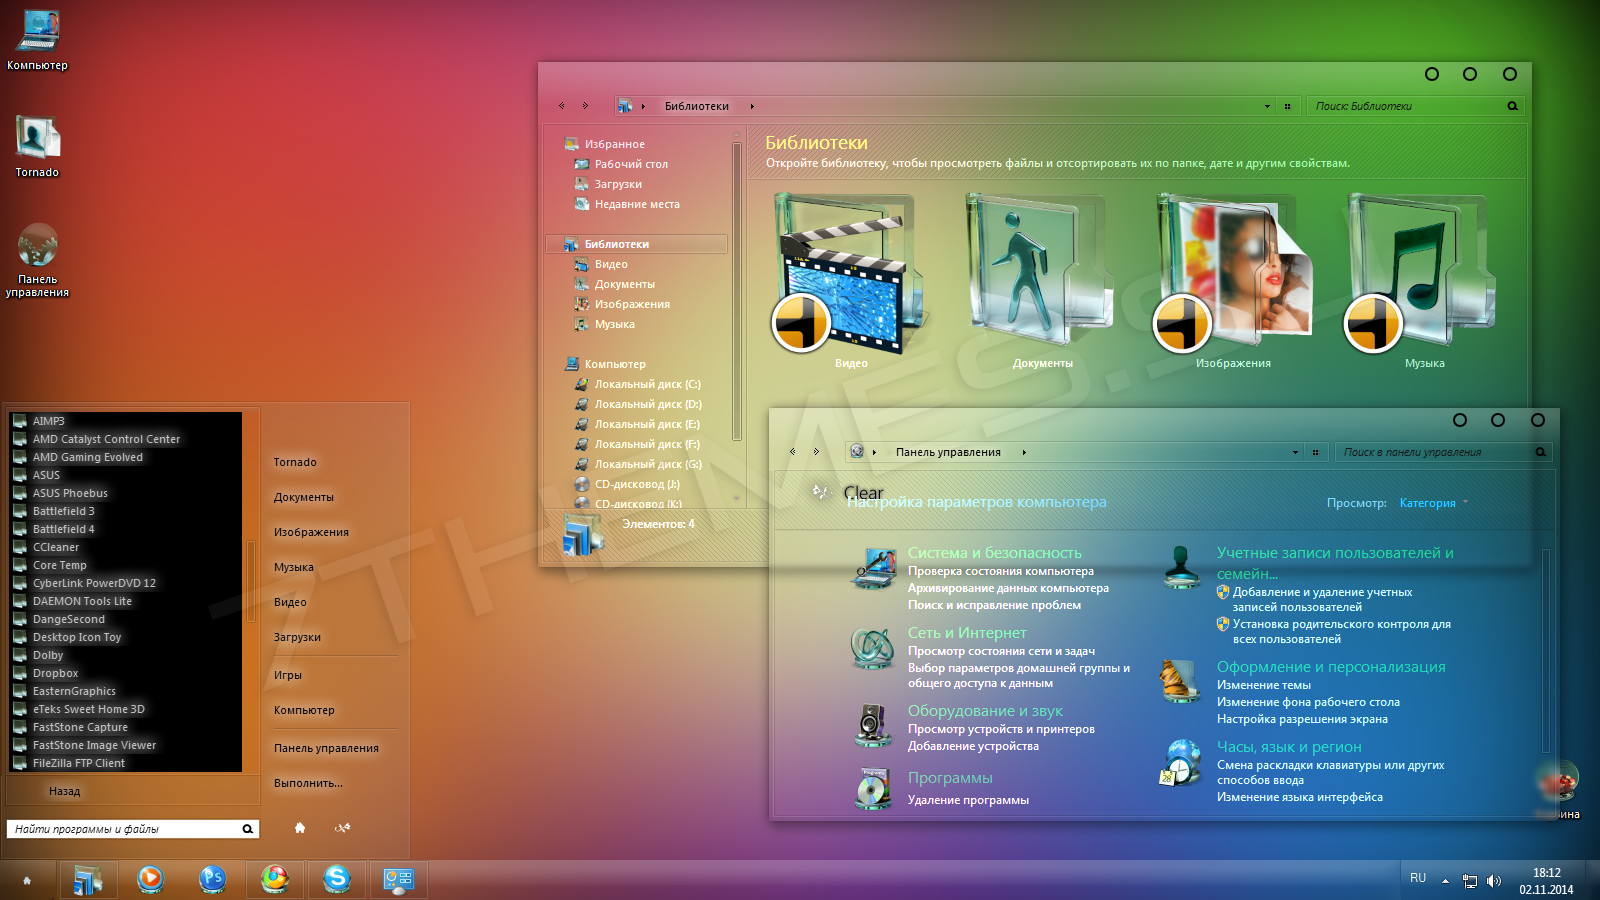 clear 3.0 glass windows 7 themes download for pc | free desktop